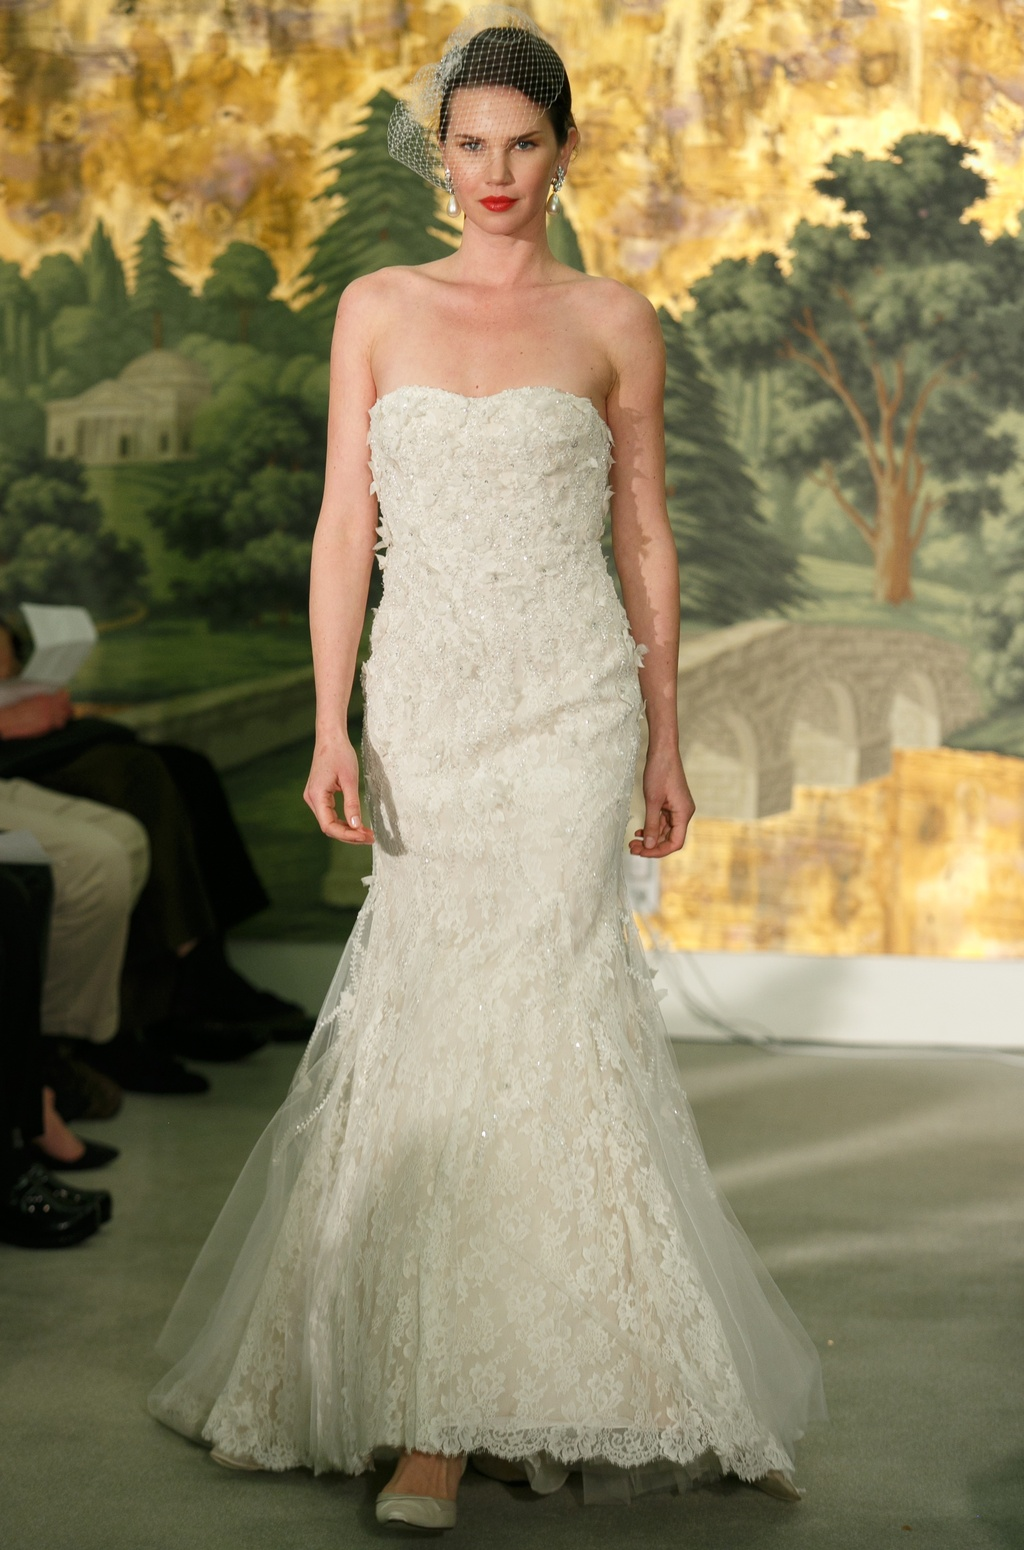 Wedding-dress-by-anne-barge-spring-2014-bridal-coriandre.full